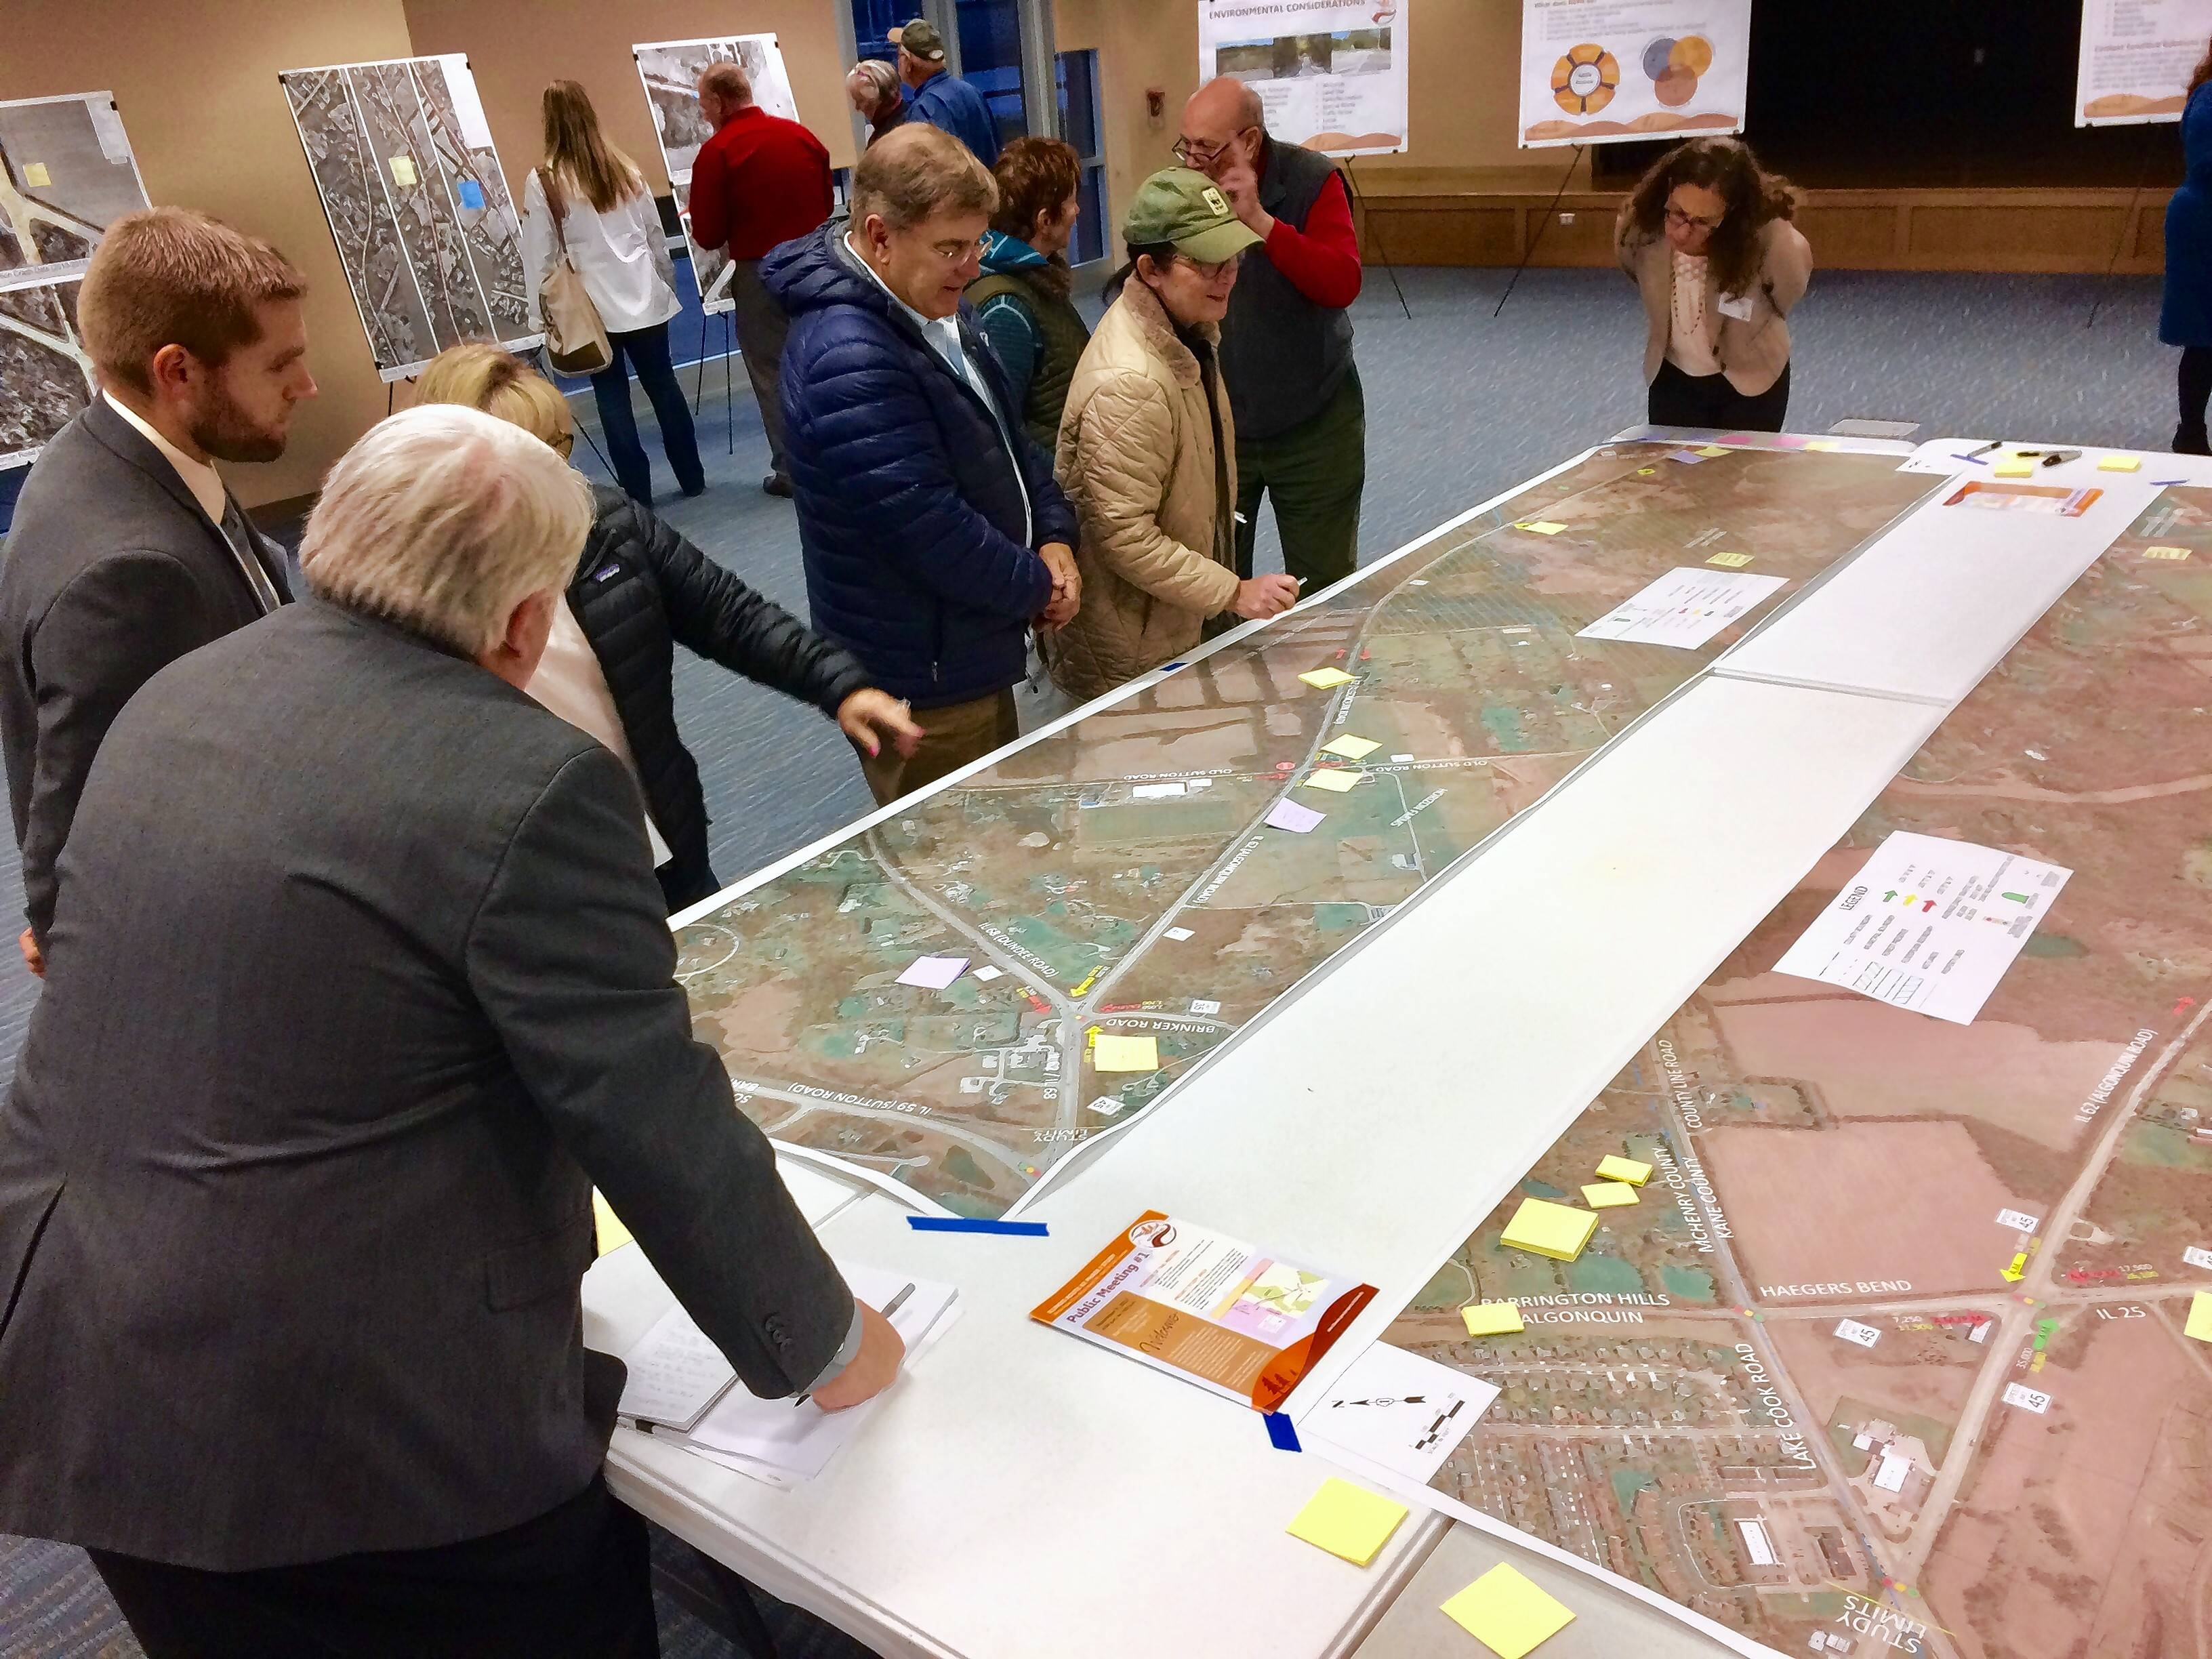 Planning has started for improvements to Algonquin Road through Barrington Hills, which Illinois Department of Transportation officials say would not begin for at least six years. Visitors here look at an image of Algonquin Road during a public information open house Thursday at Barrington Park District headquarters.